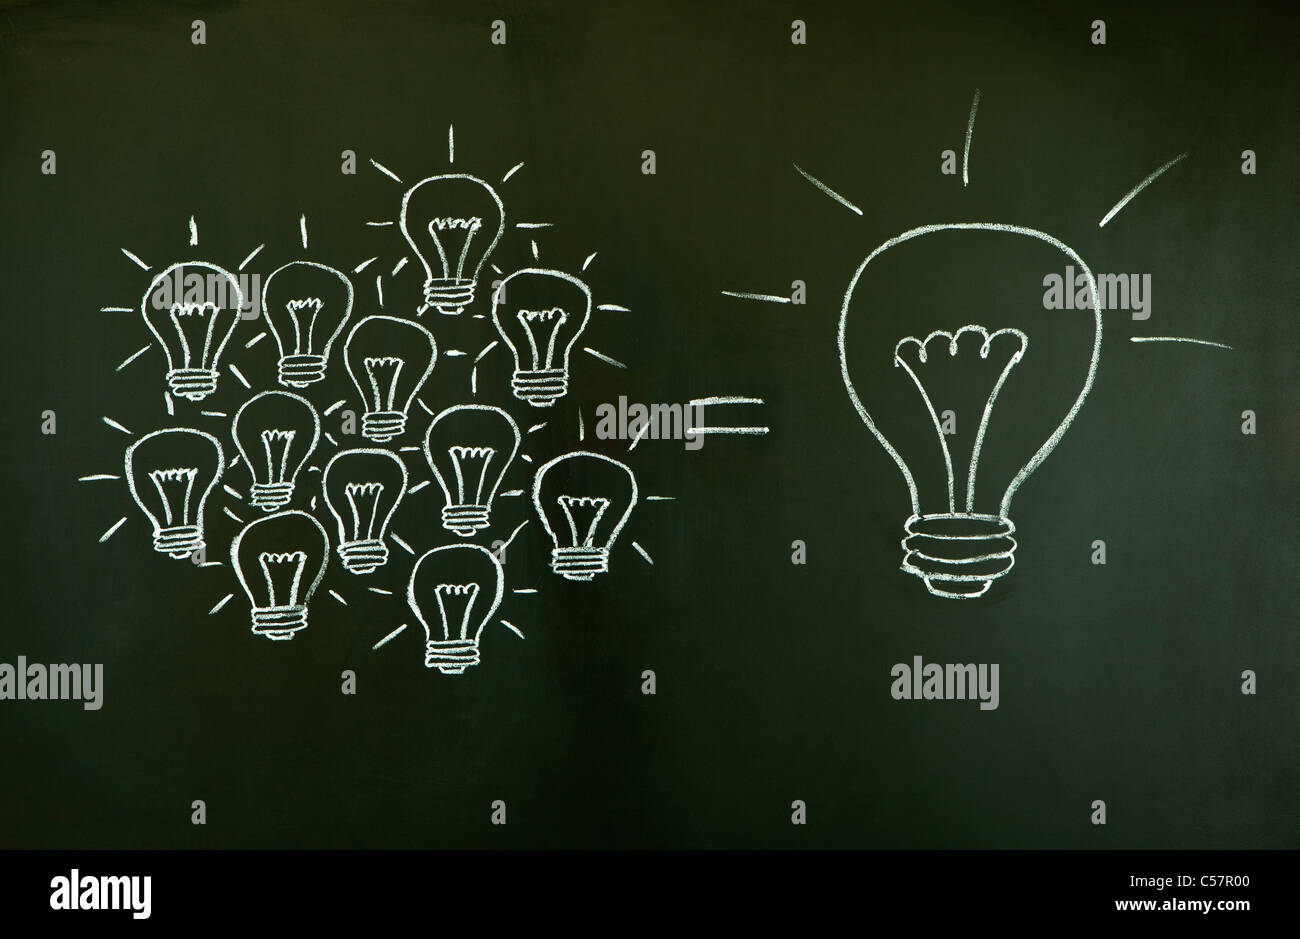 Many small ideas equal a big one, illustrated with chalk drawn light bulbs on a blackboard. Stock Photo